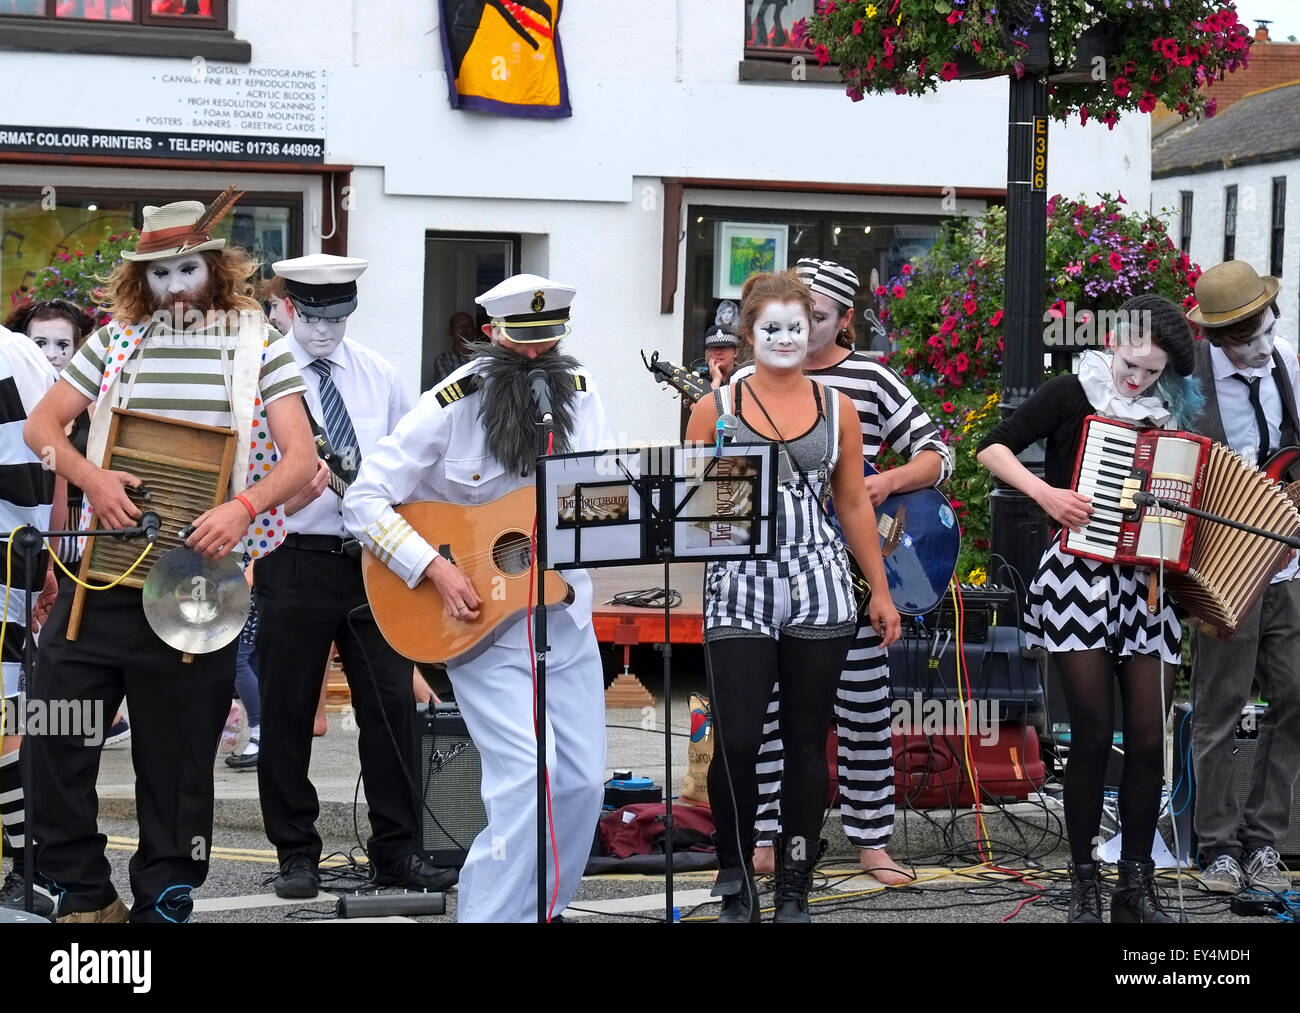 The Roustabouts Gypsy Cabaret band performing on Lafrowda Day in St.Just, Cornwall, UK - Stock Image